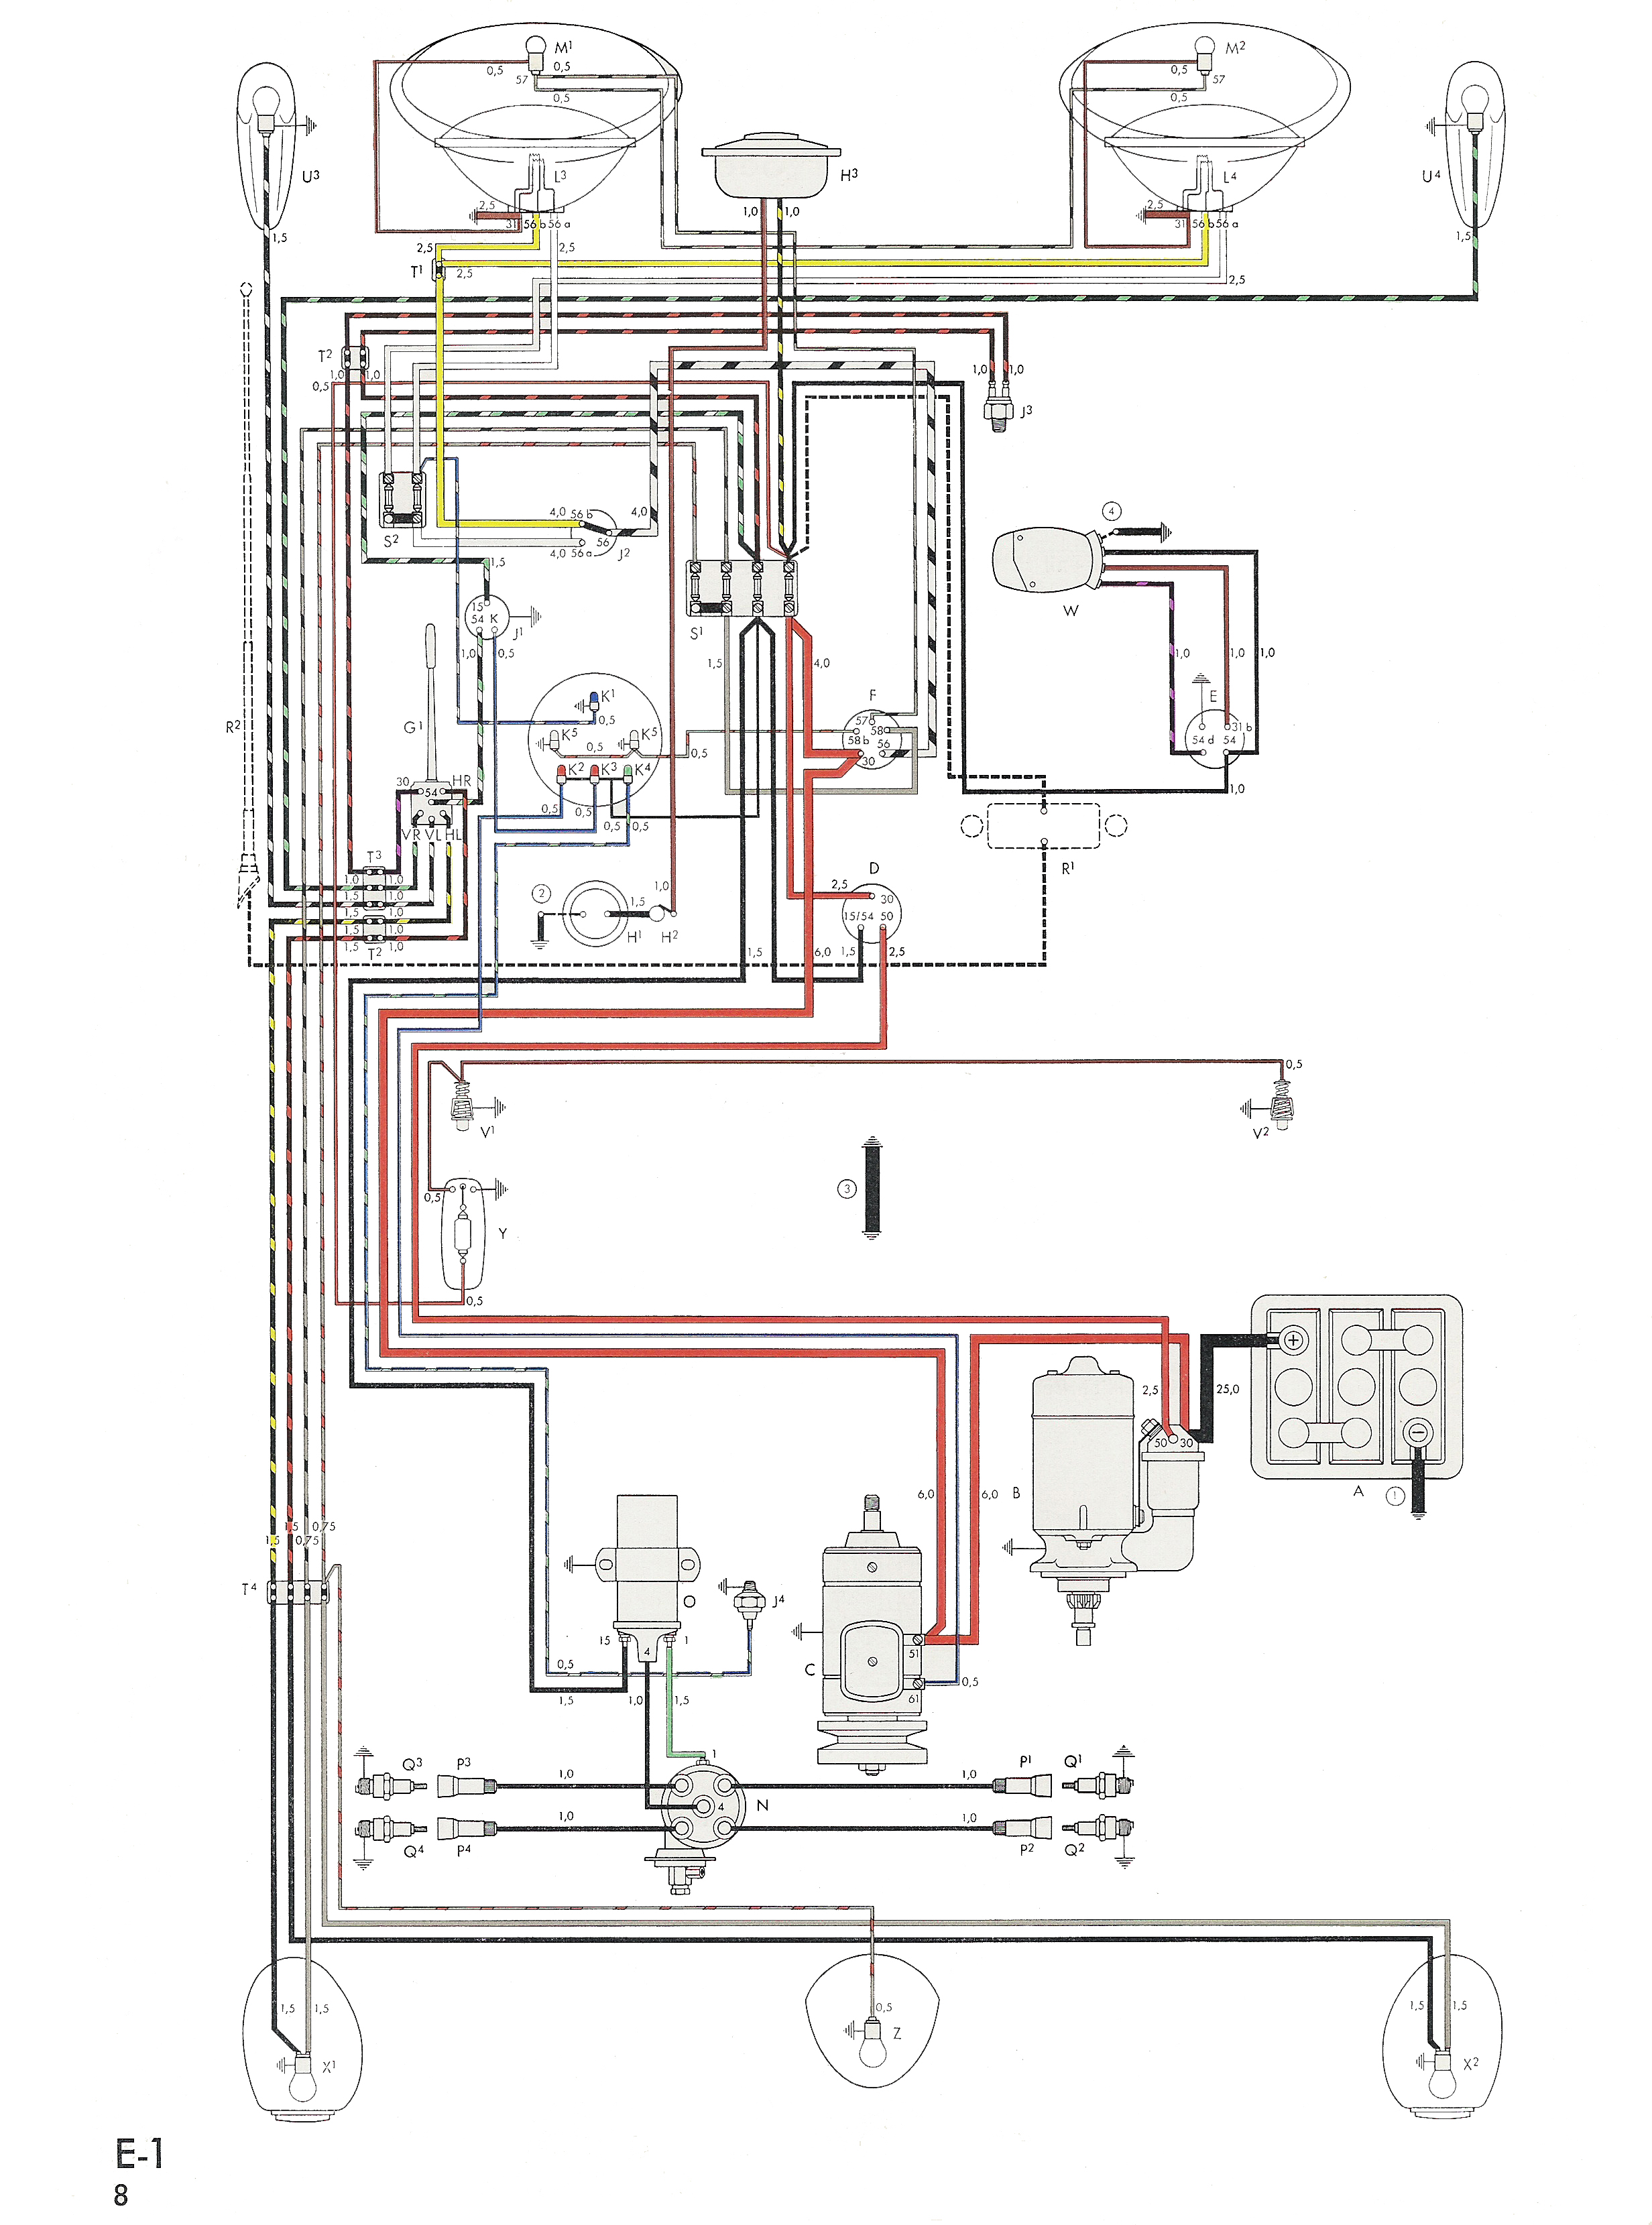 1971 vw bus wiring diagram electrics t25 starter into a 72 baywindow forum 99 jeep grand cherokee limited radio 71 type 3 coil library 1958 usa